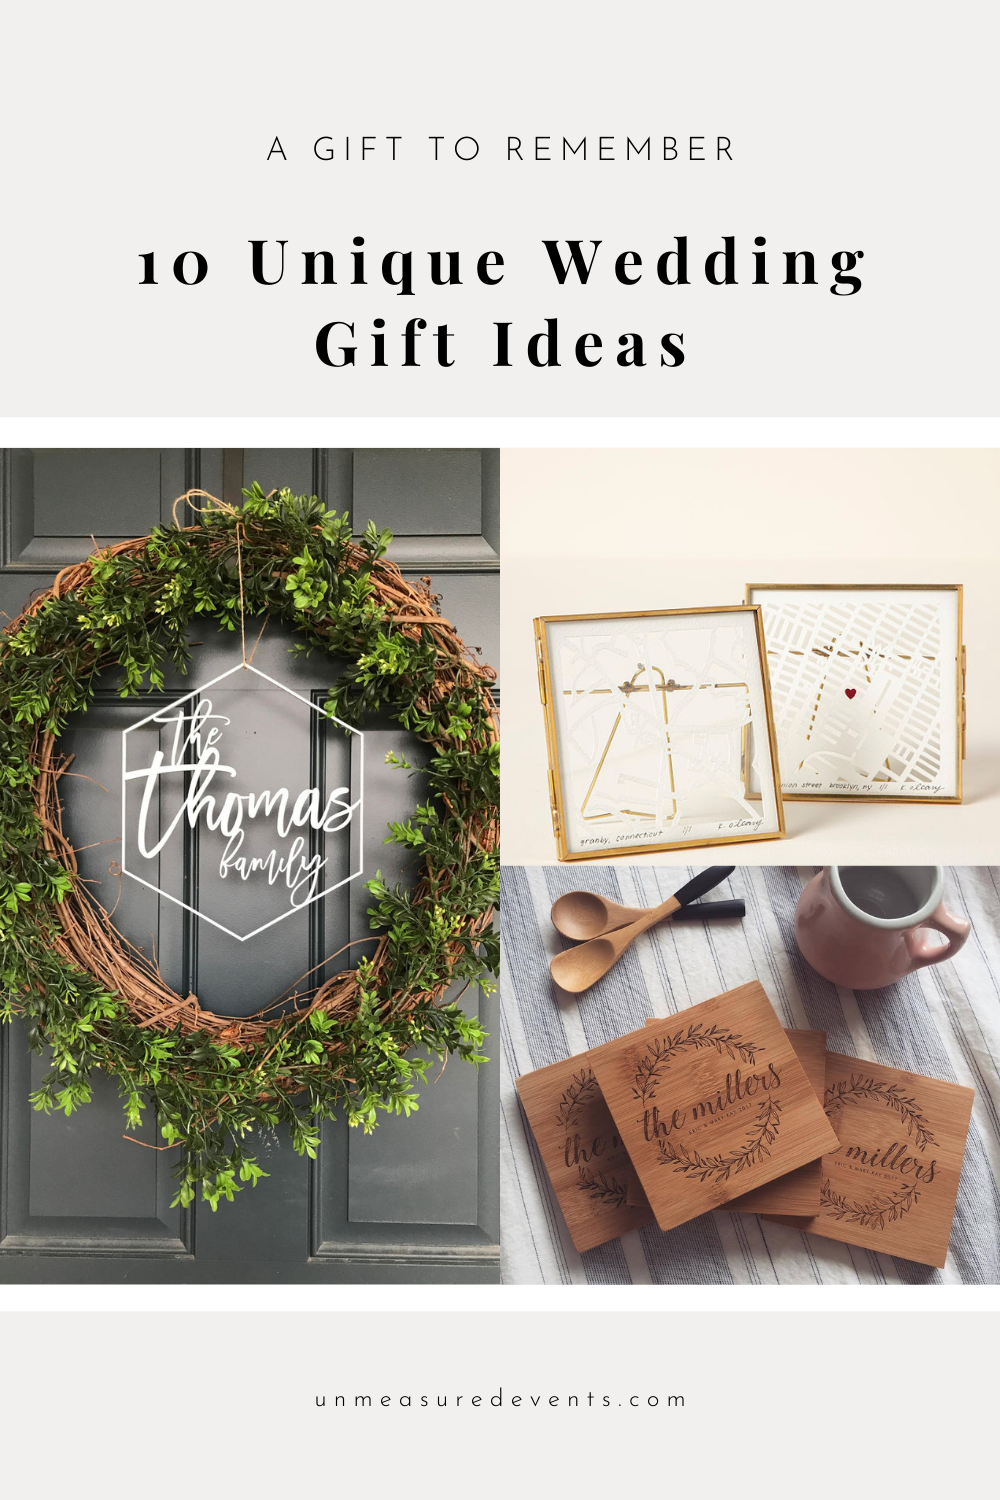 10 Unique Wedding Gift Ideas for Newlyweds on the Unmeasured Events Blog